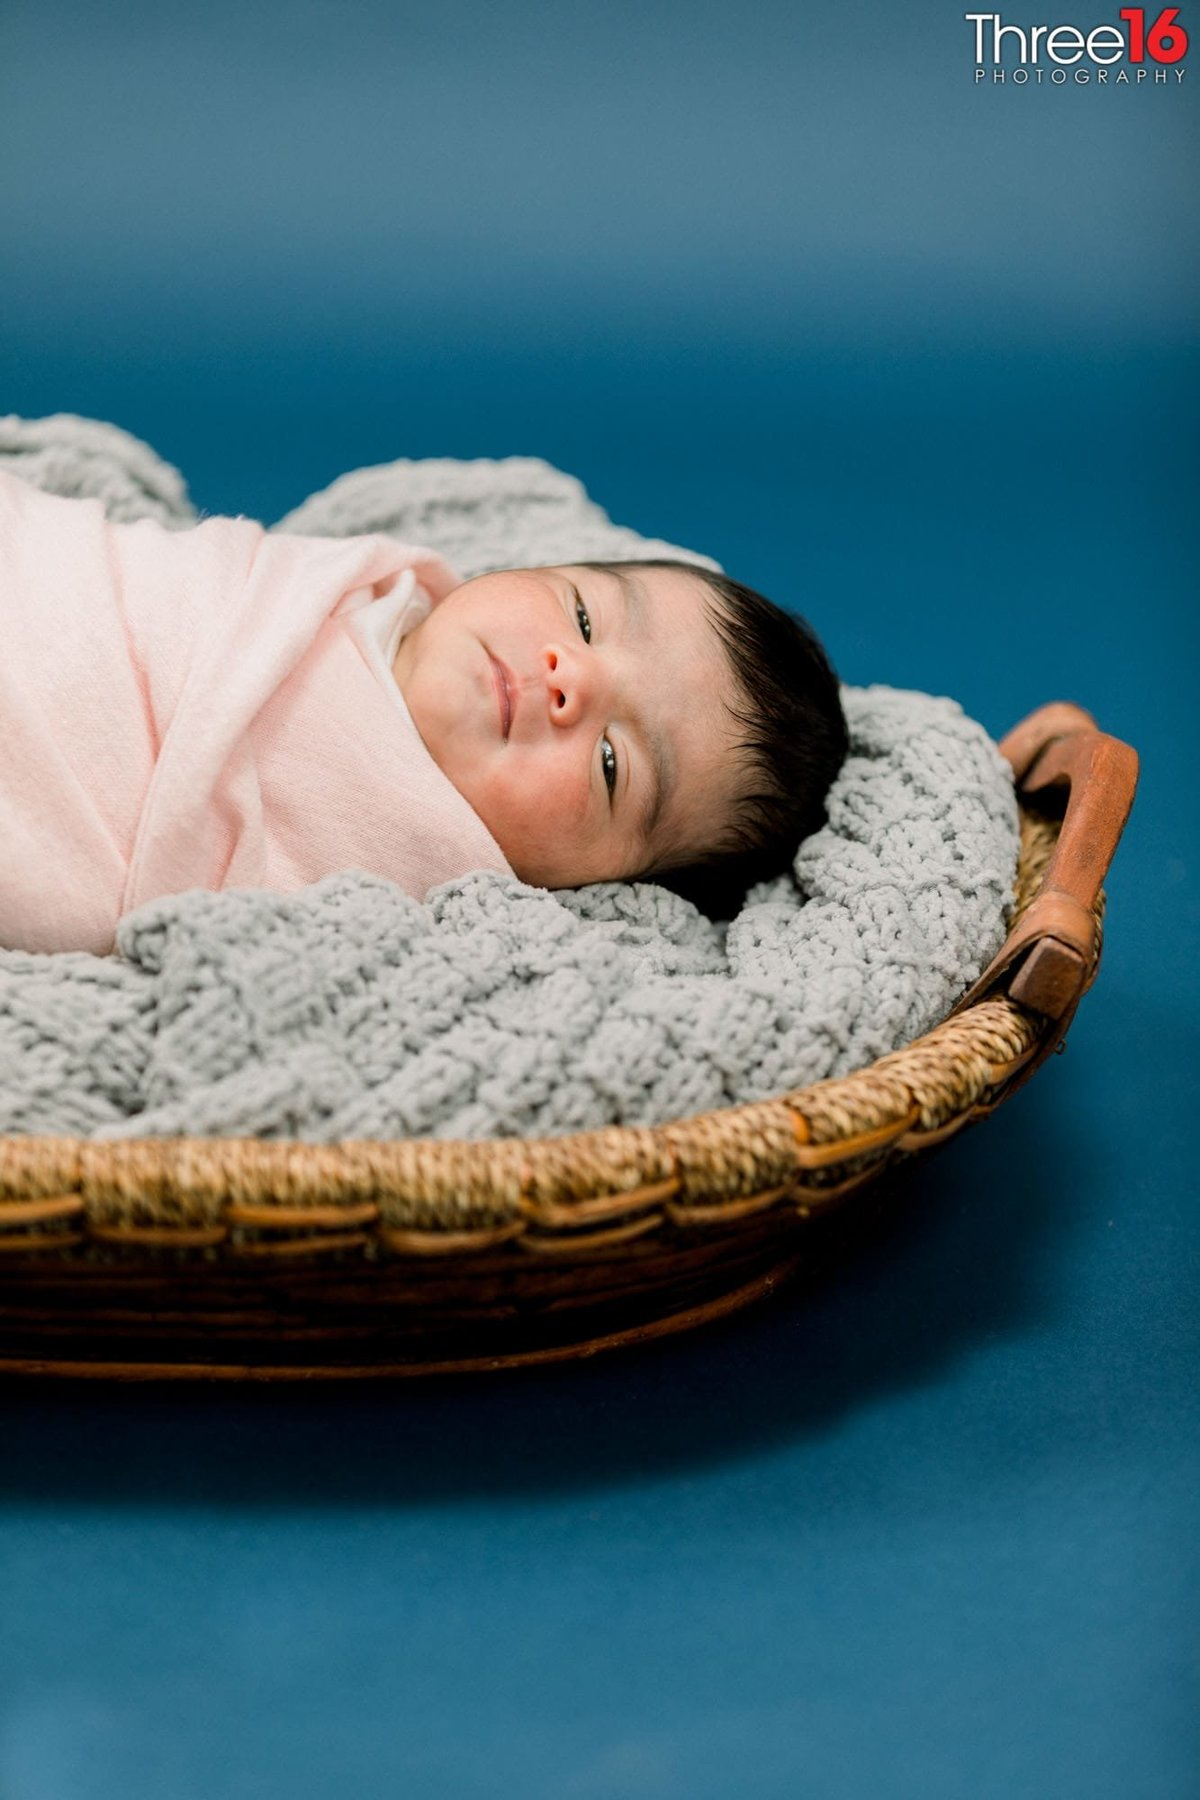 Newborn Photography in Orange County California